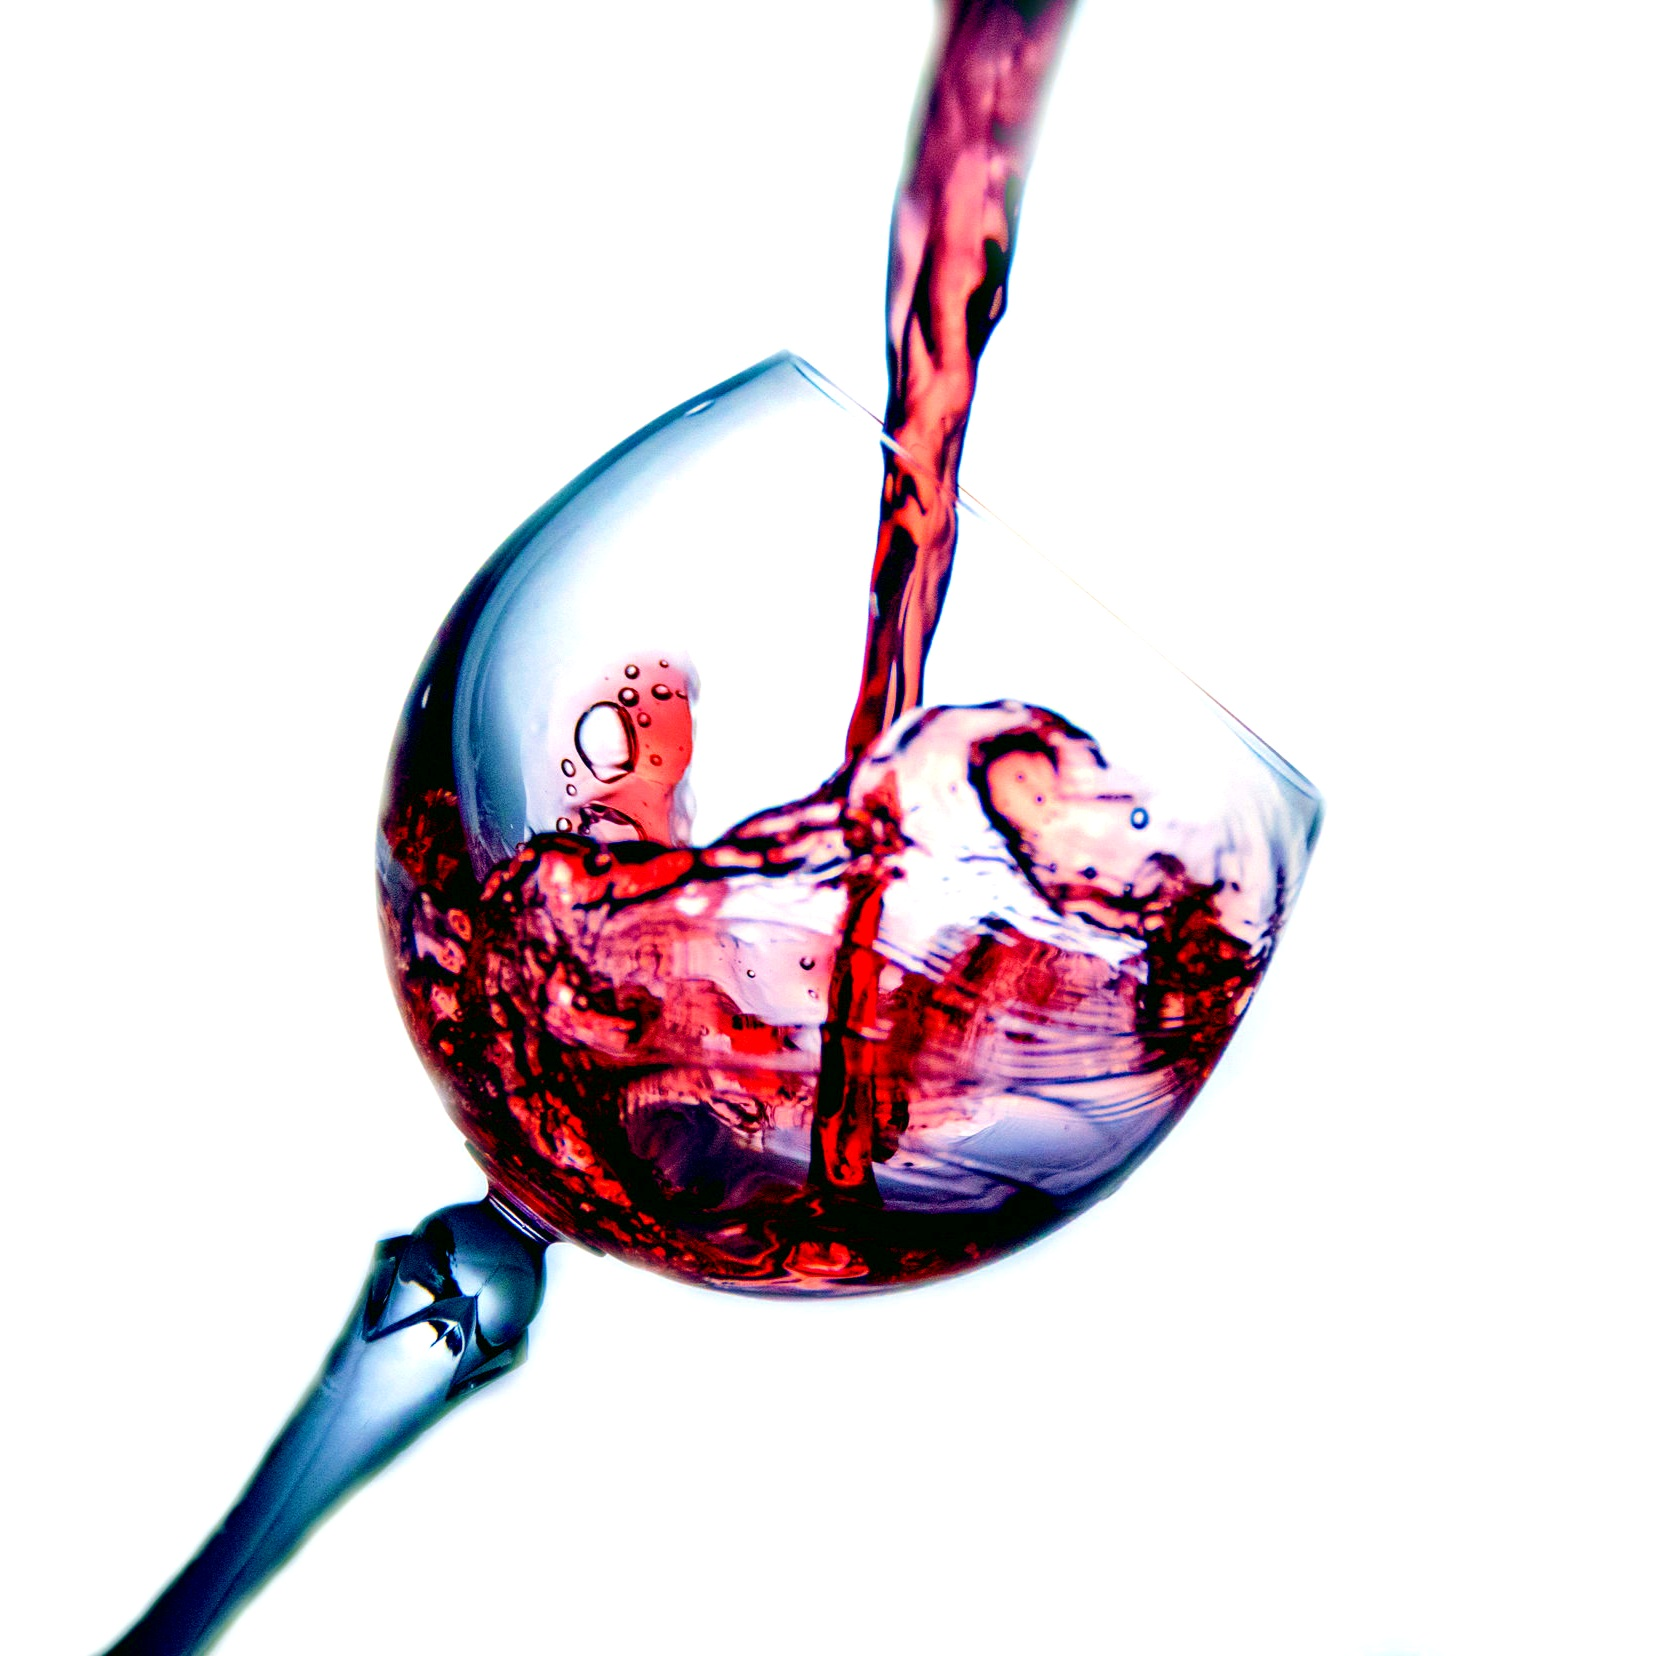 What You NEED To Know About ALCOHOL Part 1: Your Body On Alcohol